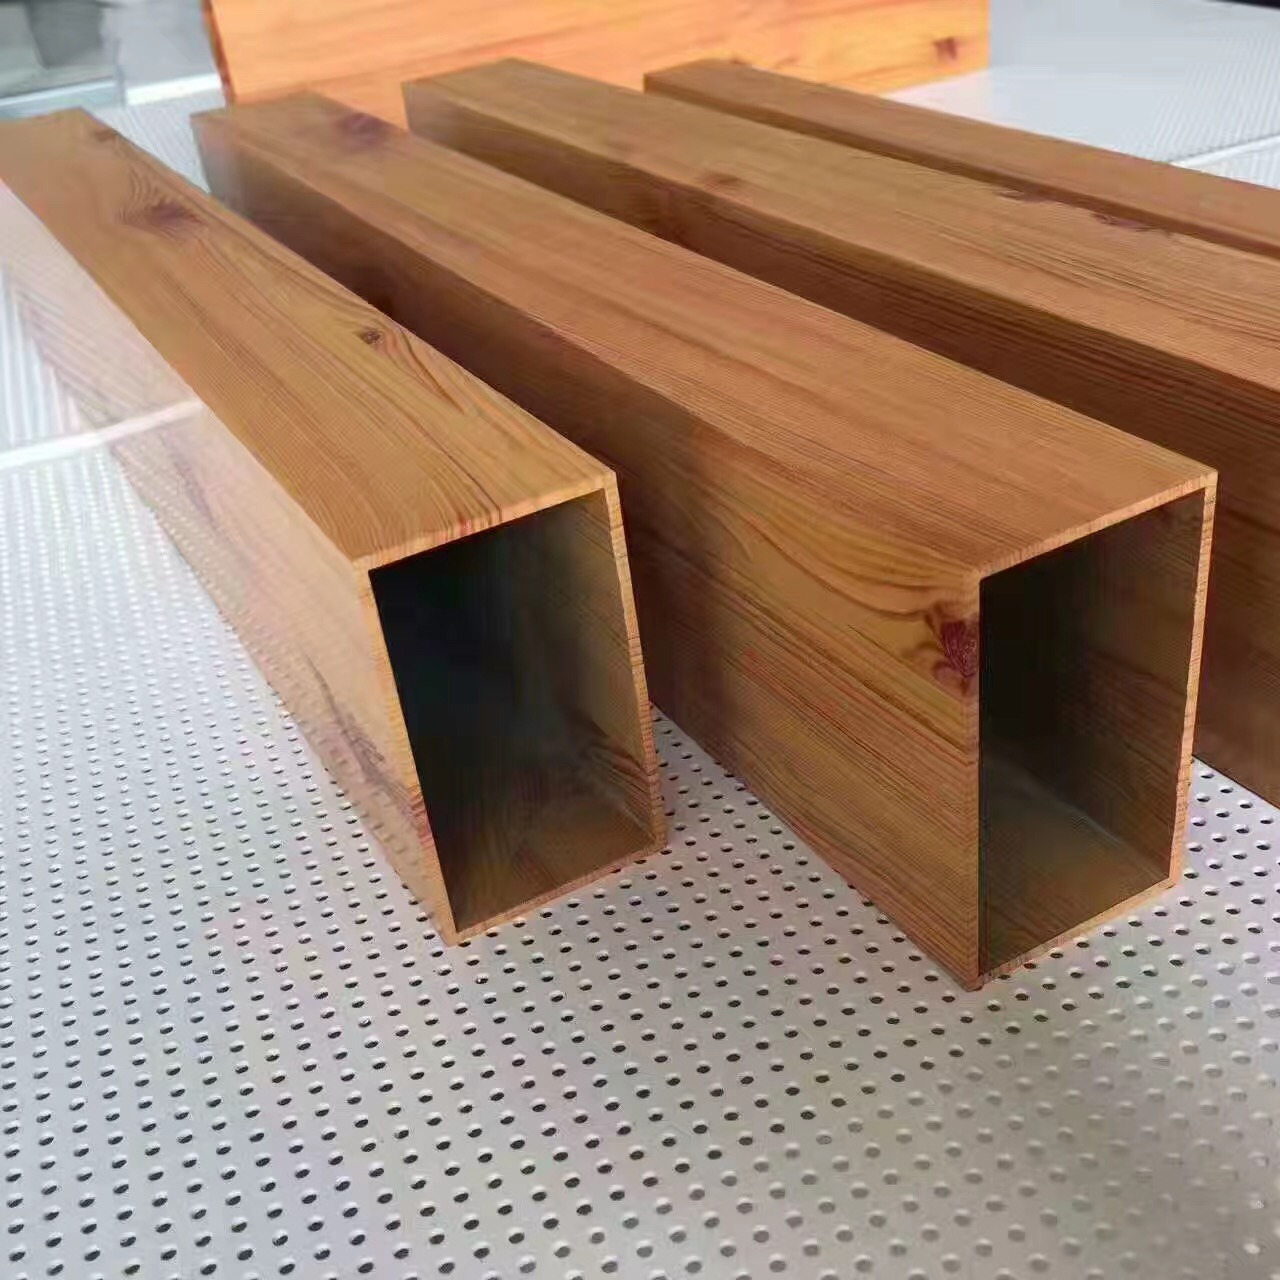 China Building Material Decoration False Ceiling Decorative Panel Suspended Baffle Factory Wood